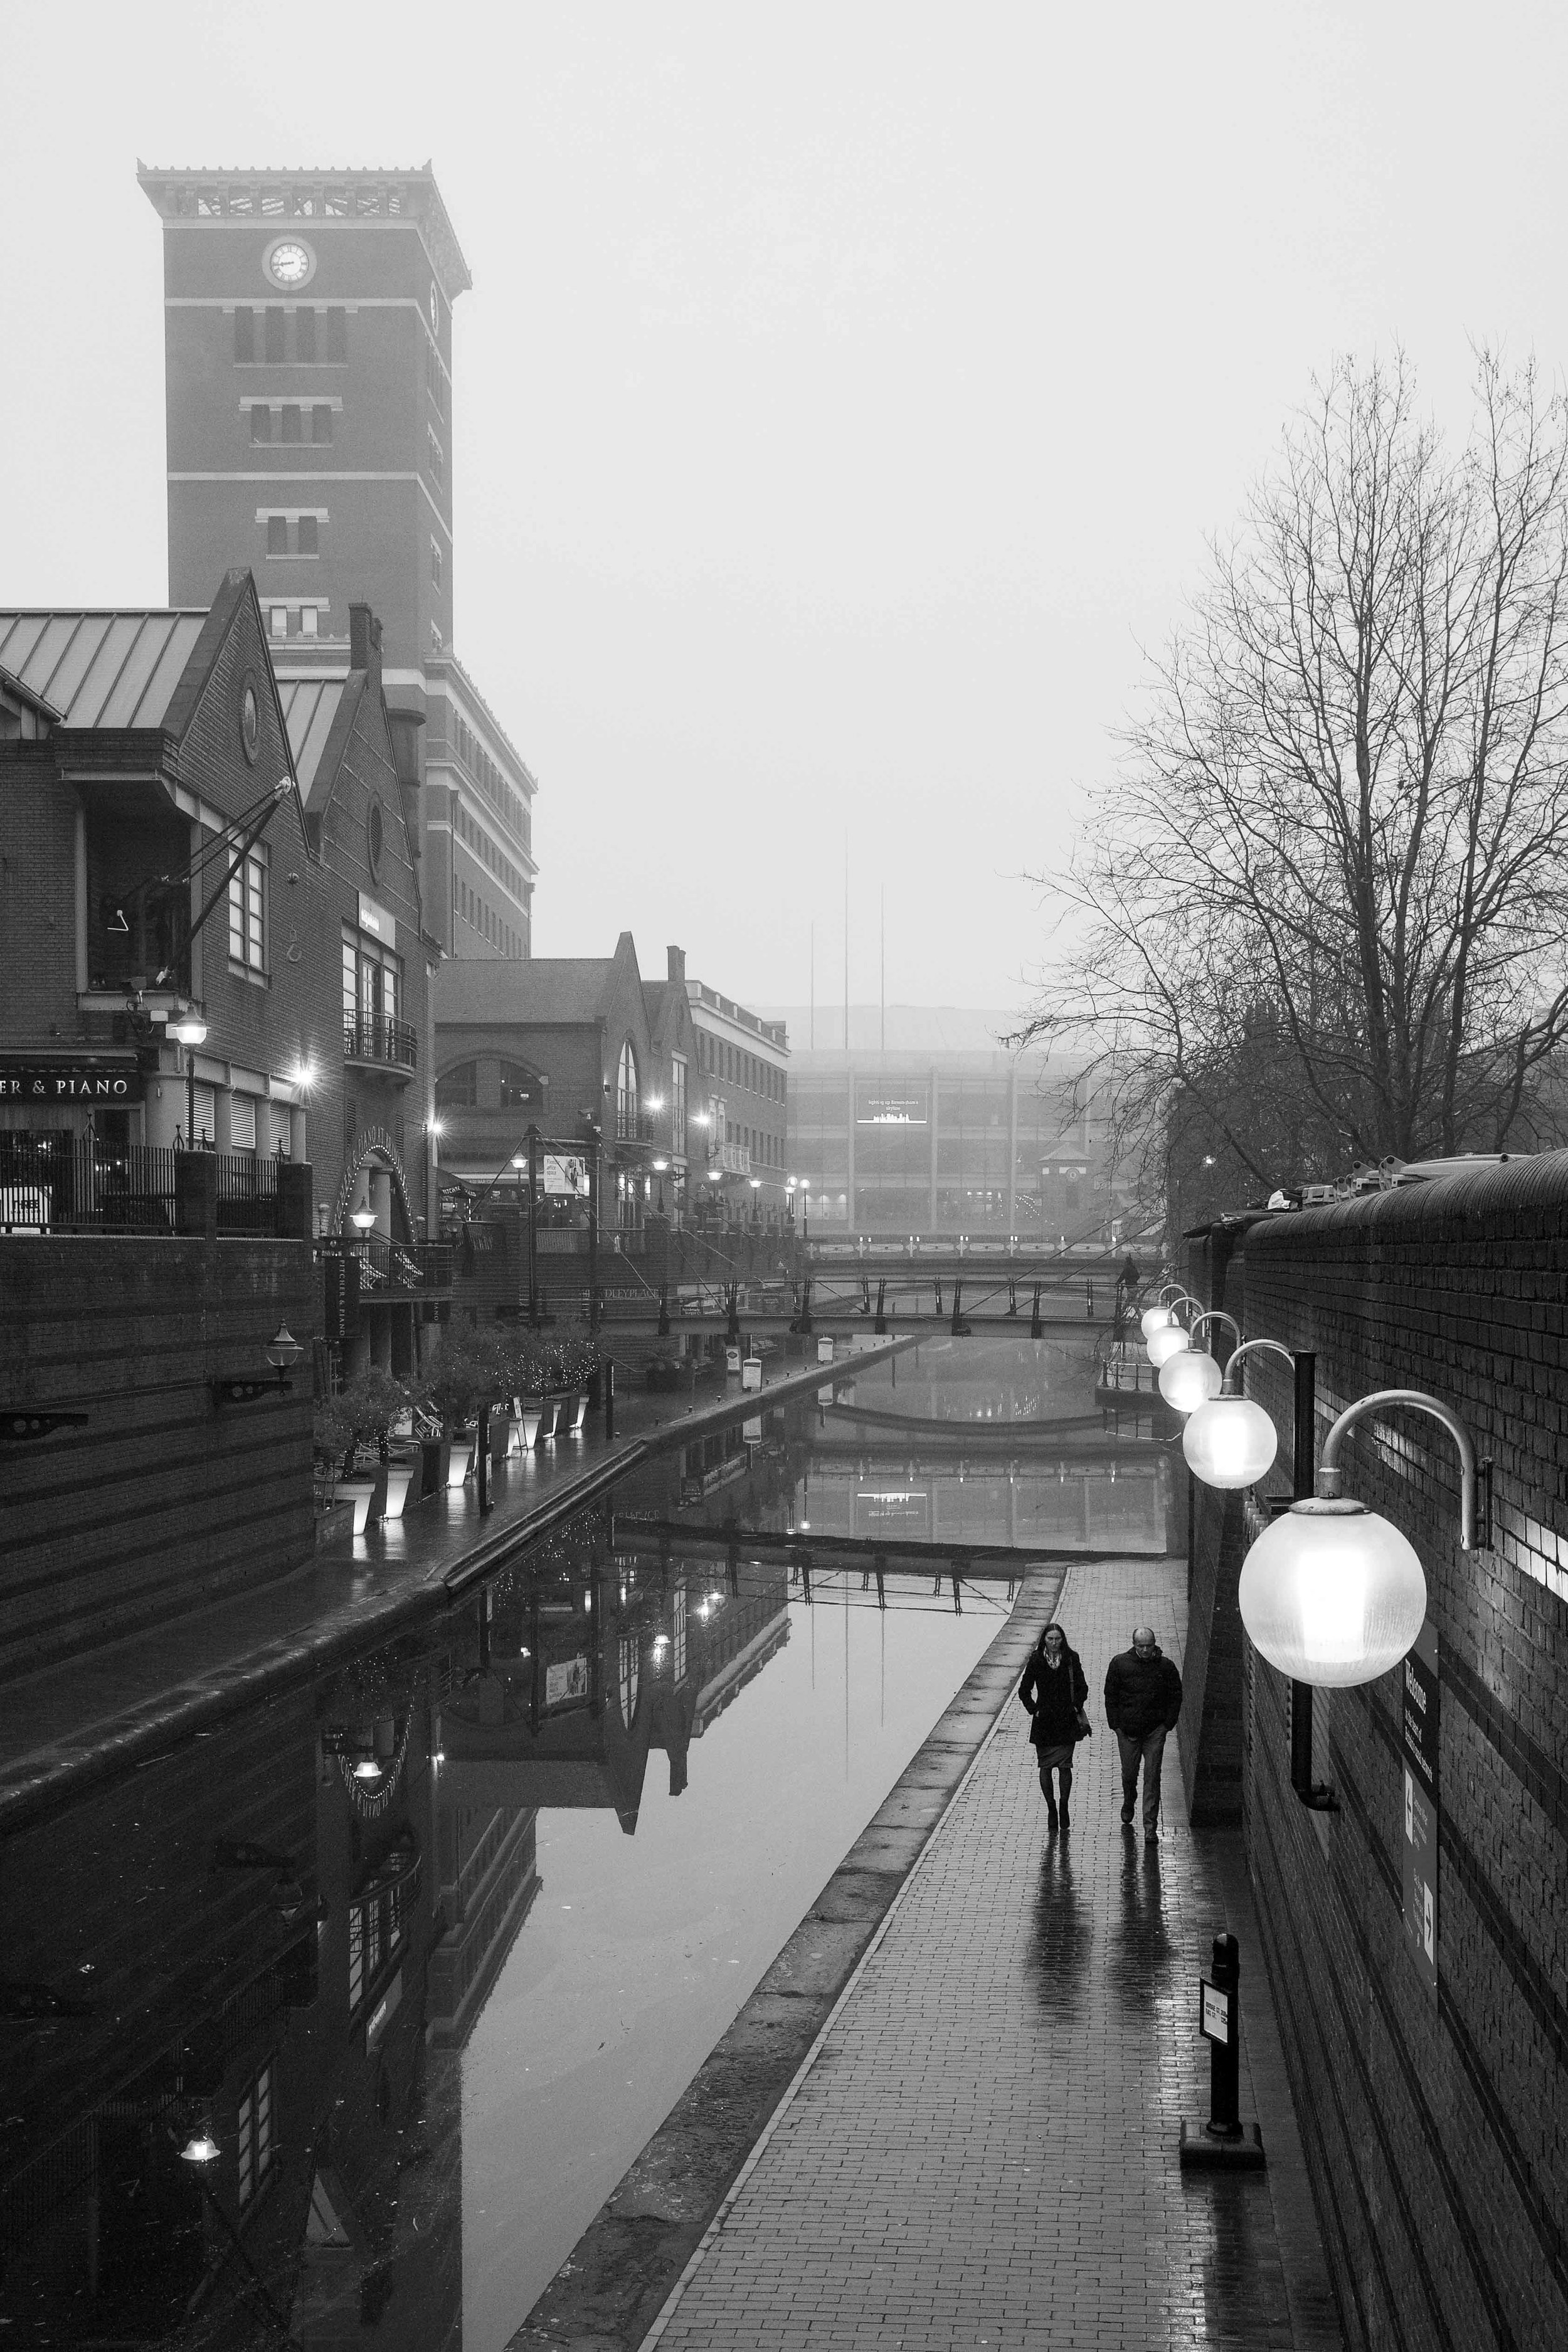 January: Misty morning in Brindleyplace.